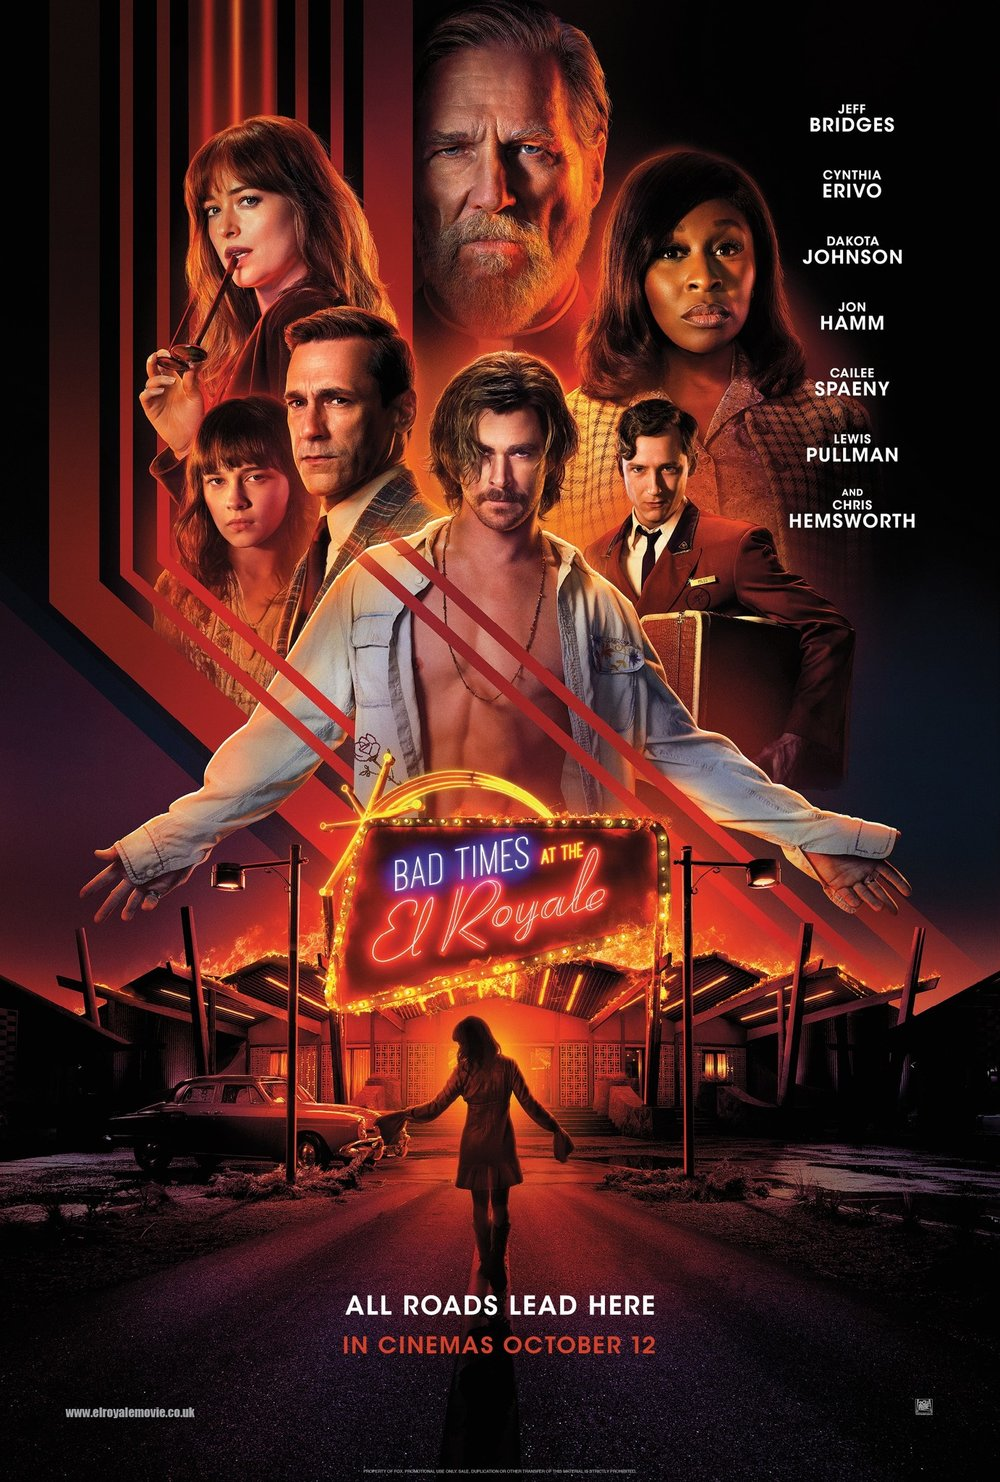 Bad Times at the El Royale   (2018) dir. Drew Goddard Rated: R image: ©2018  20th Century Fox